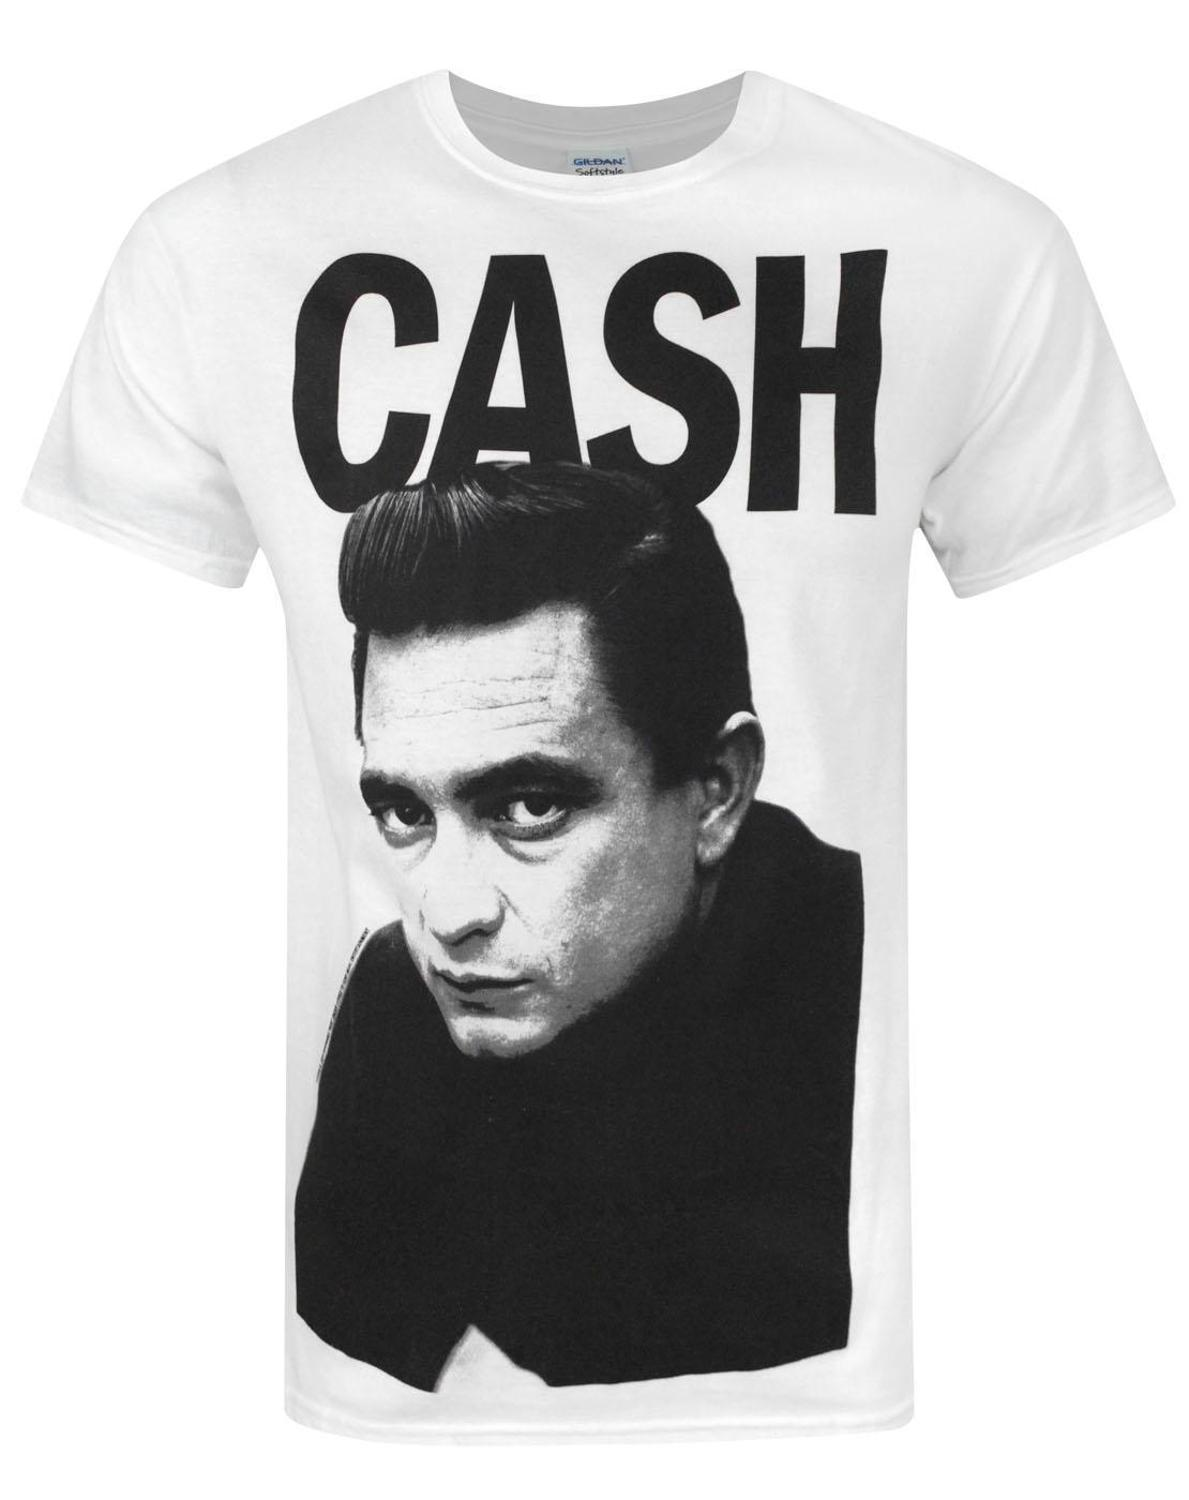 Johnny cash rebel t shirt logo - 2017 Summer Fashion Official Johnny Cash Portrait Design Printed T Shirt Hipster Tops Customize Printed Short